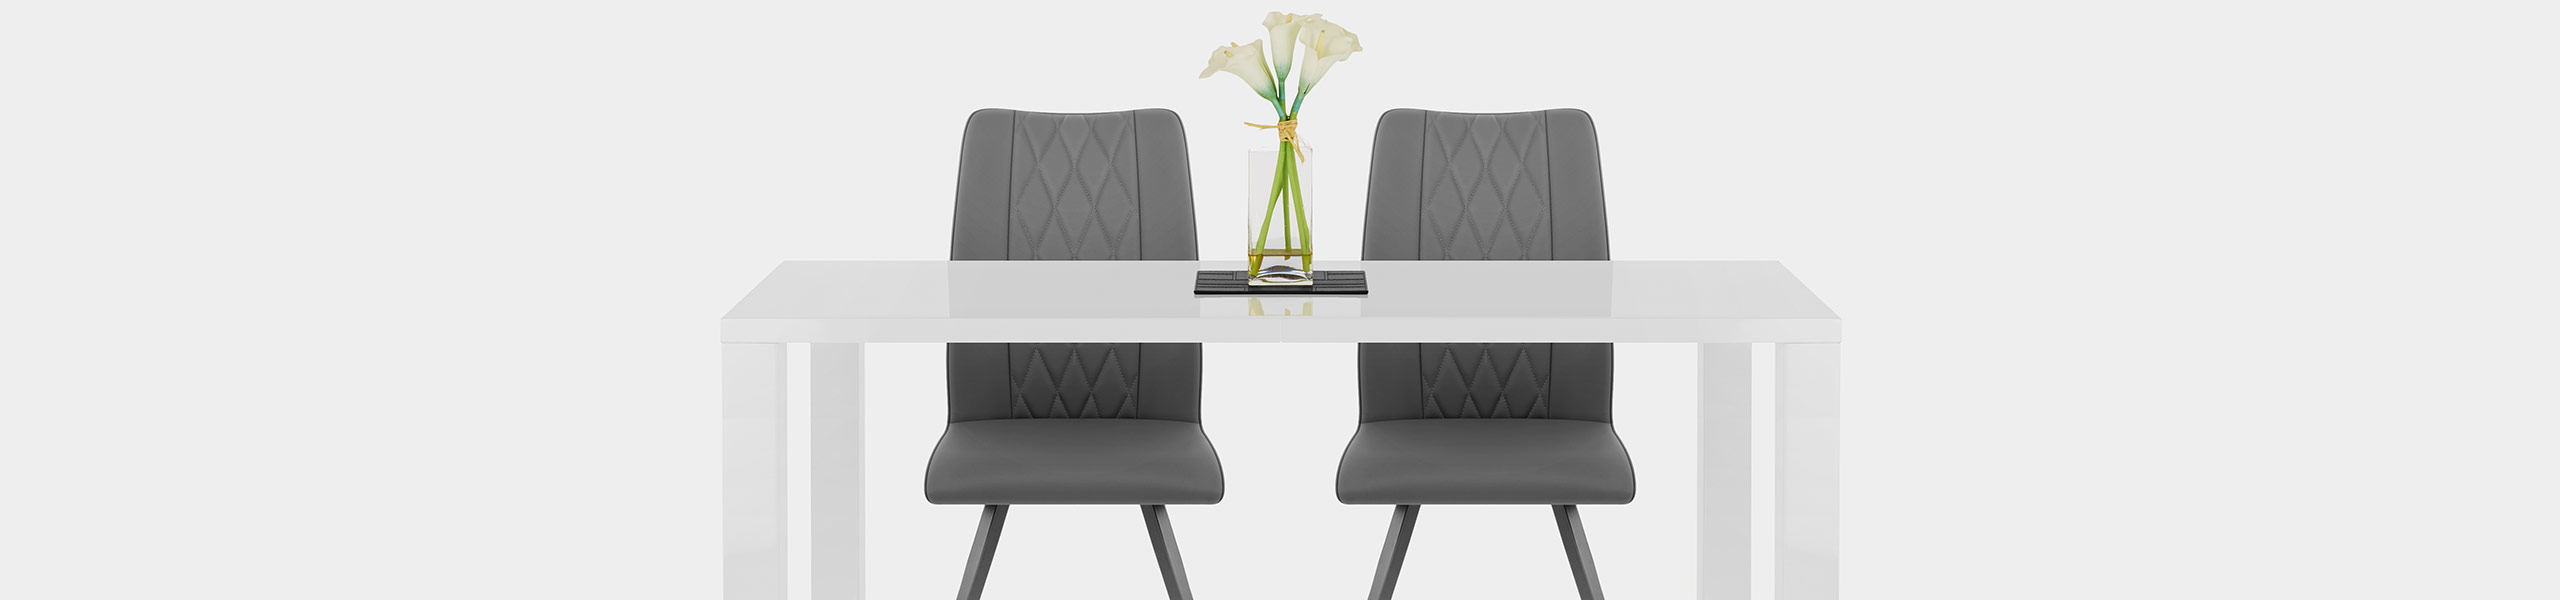 Gio Dining Chair Charcoal Video Banner